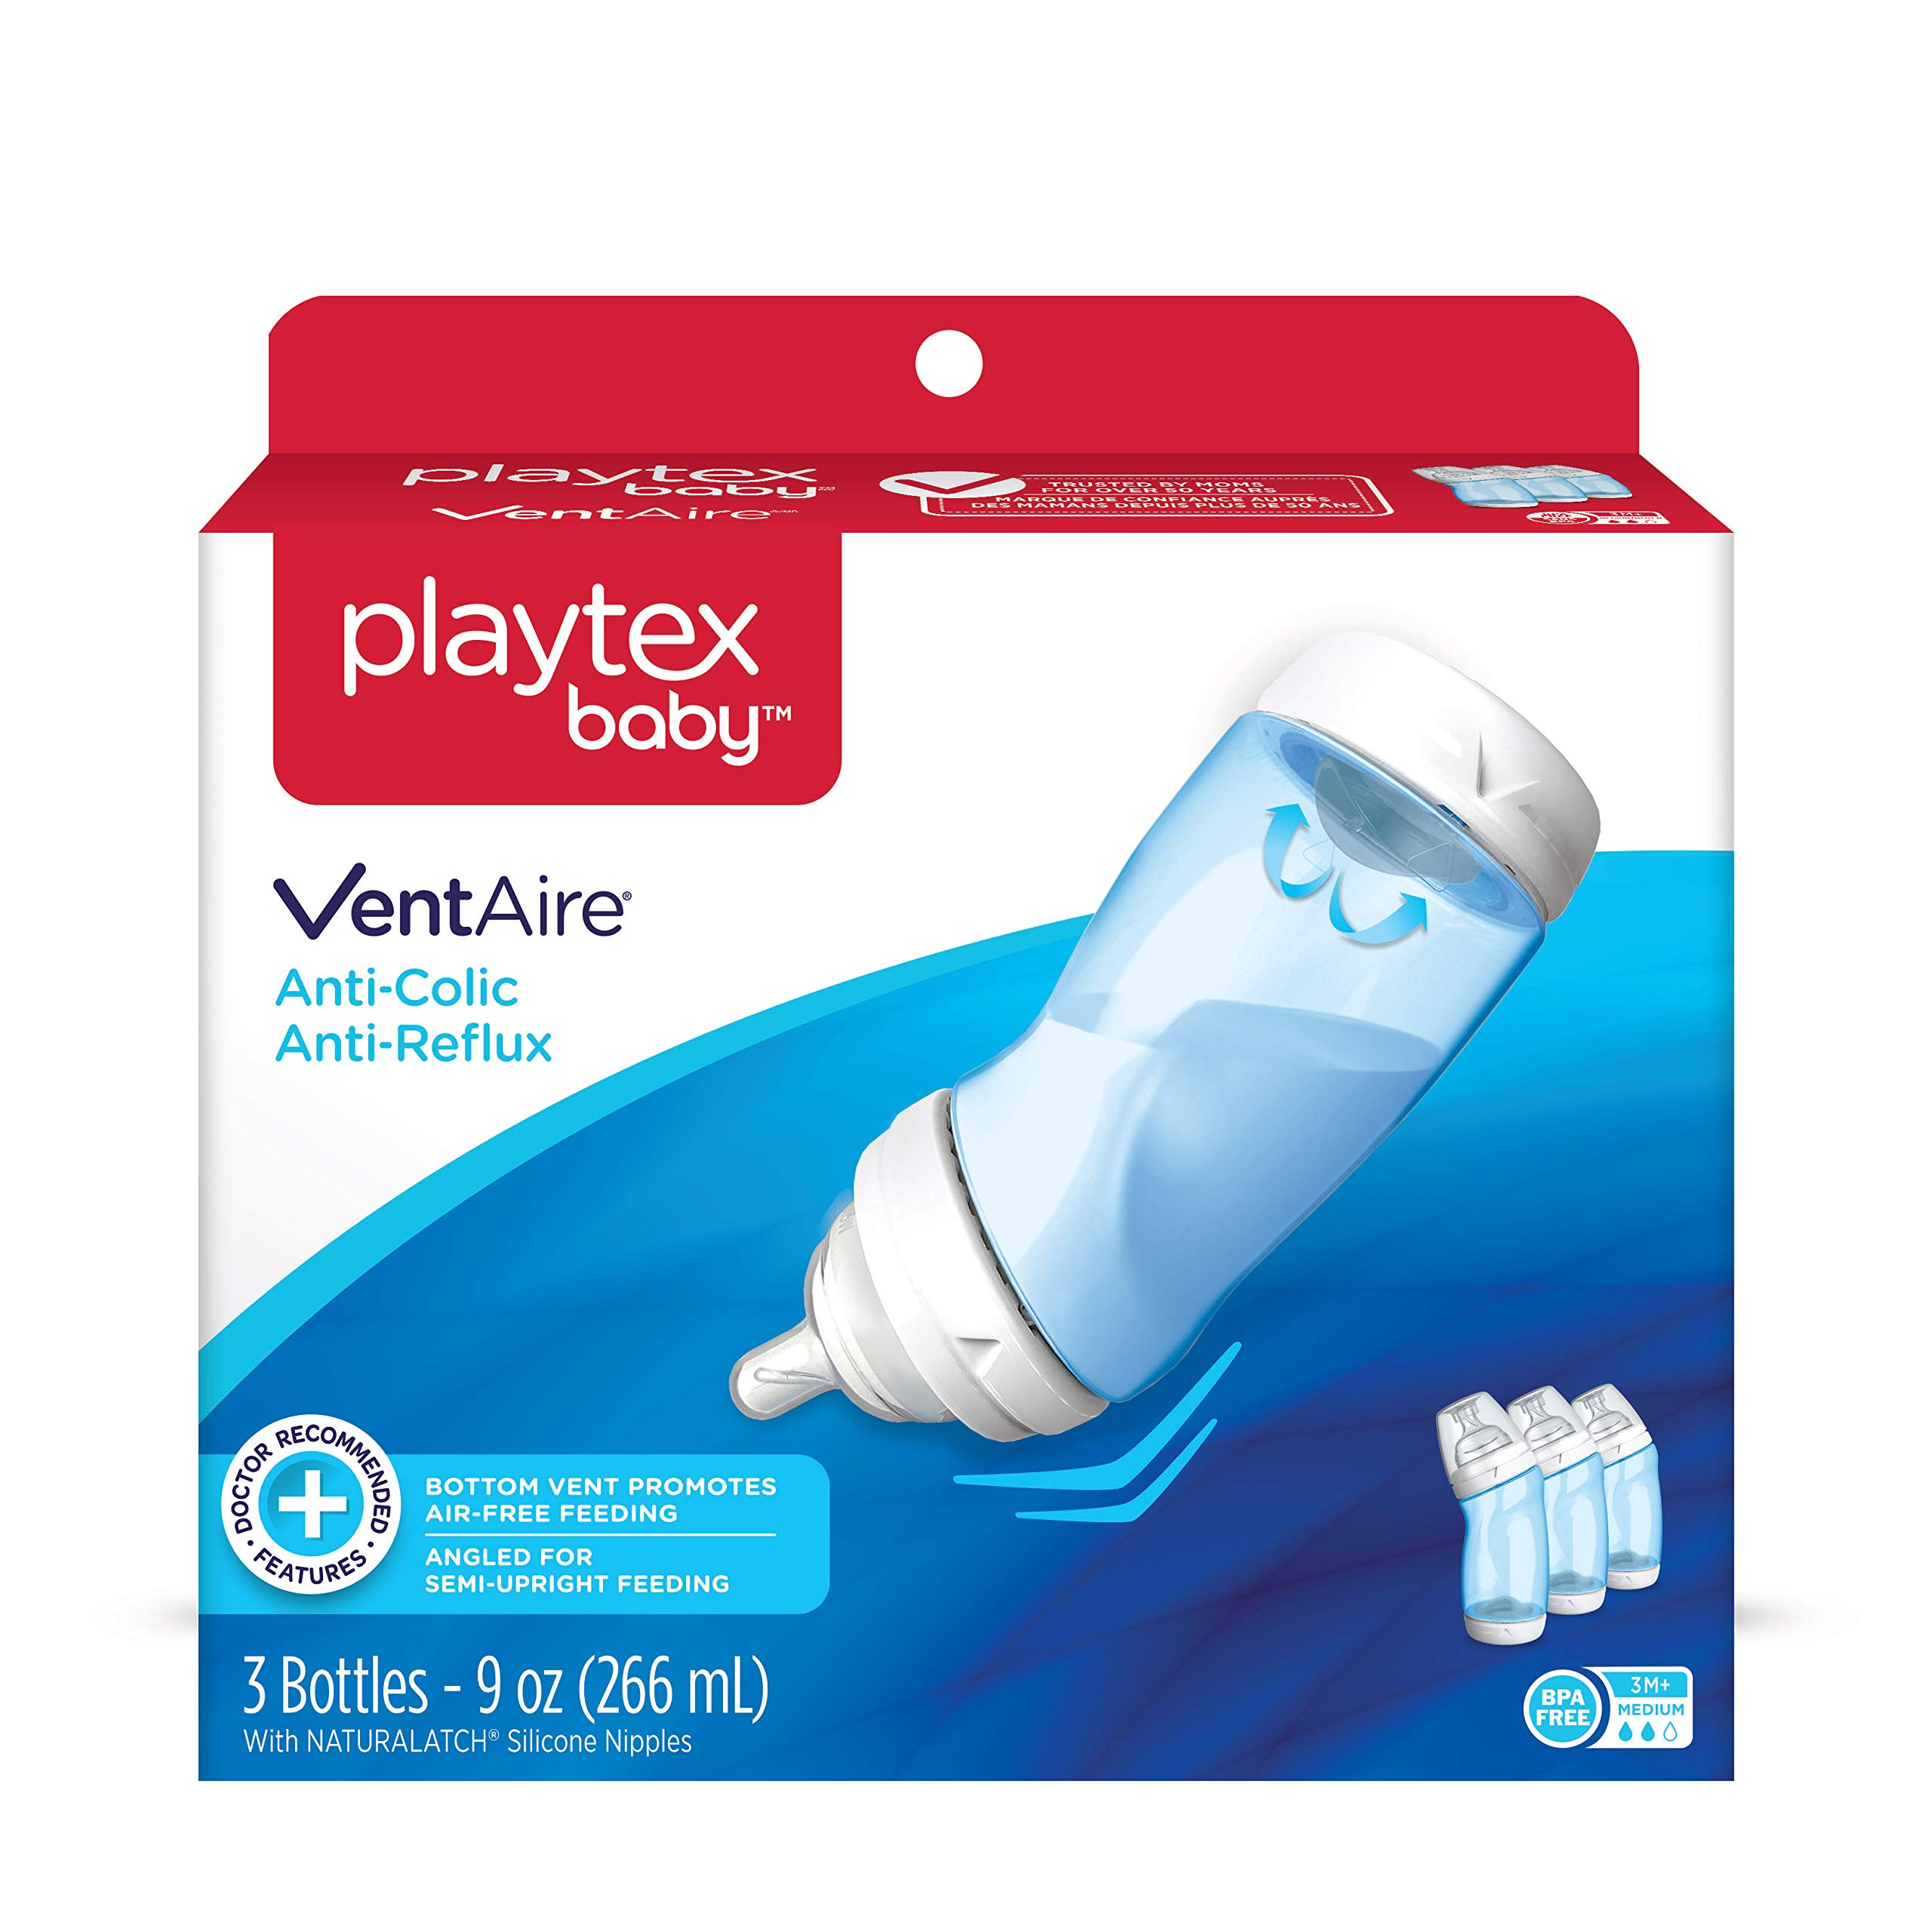 Playtex Baby VentAire Bottle for Boys, Helps Prevent Colic and Reflux, 9 Ounce Blue Bottles, 3 Count